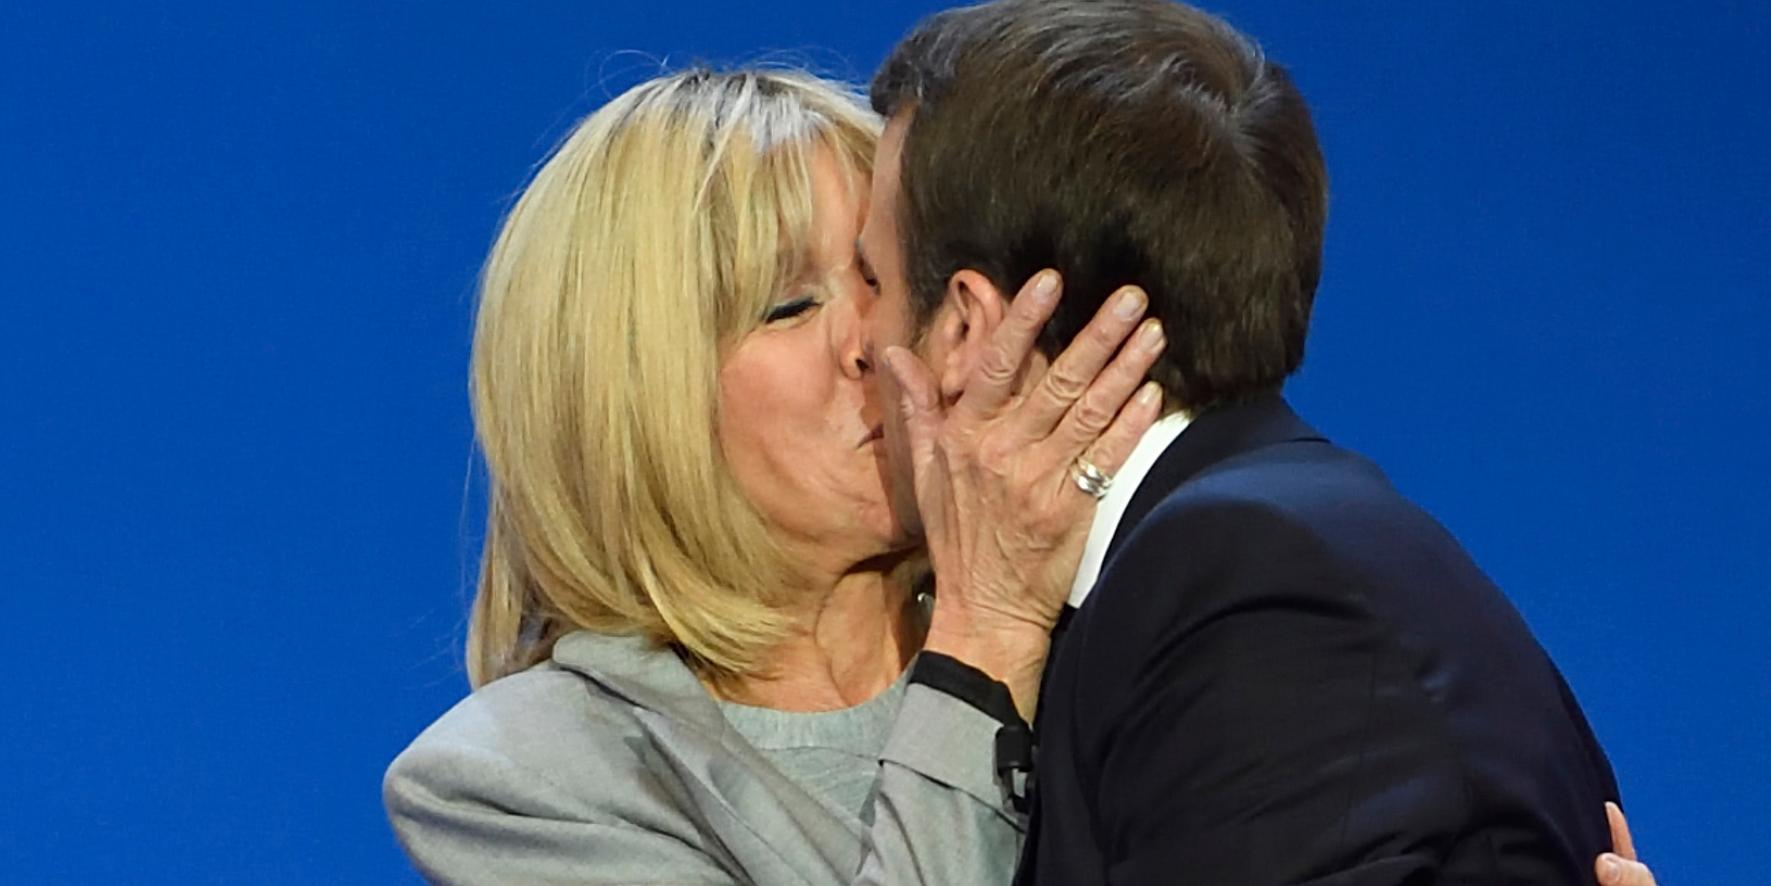 The 24 Year Age Gap Between Macron And His Wife Isn T As Unusual As You D Think Indy100